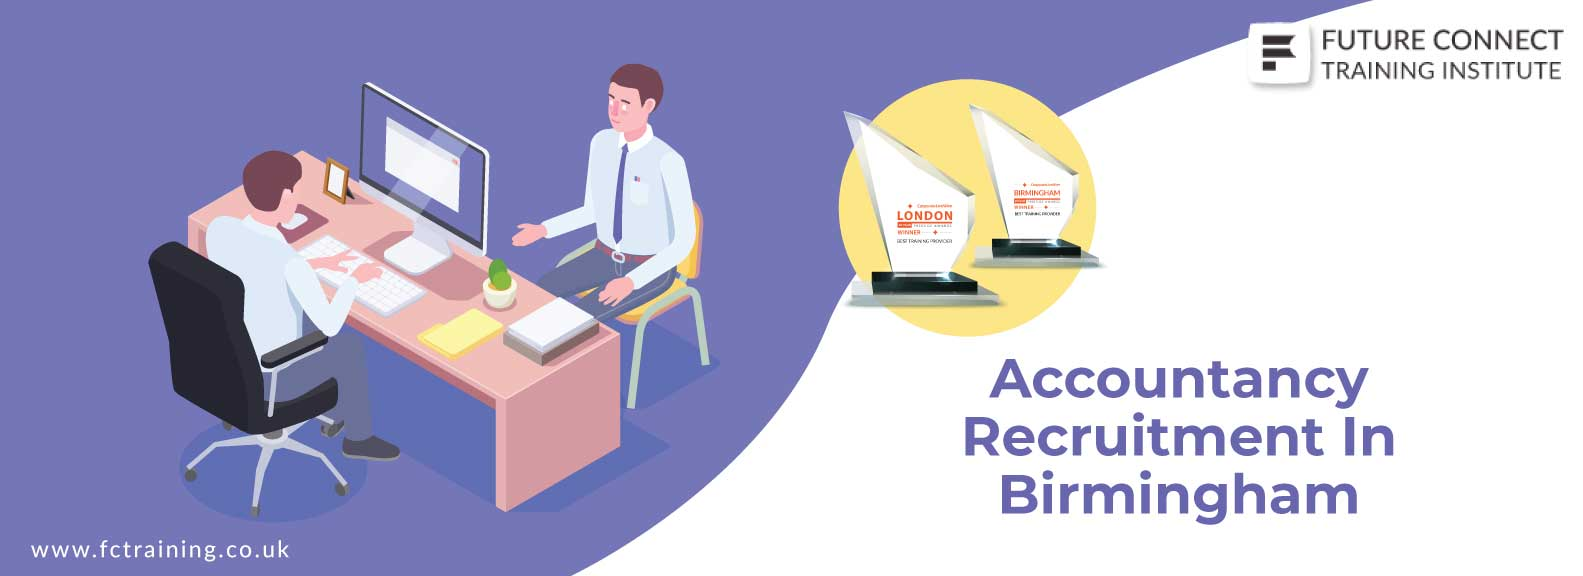 Accountancy Recruitment In Birmingham